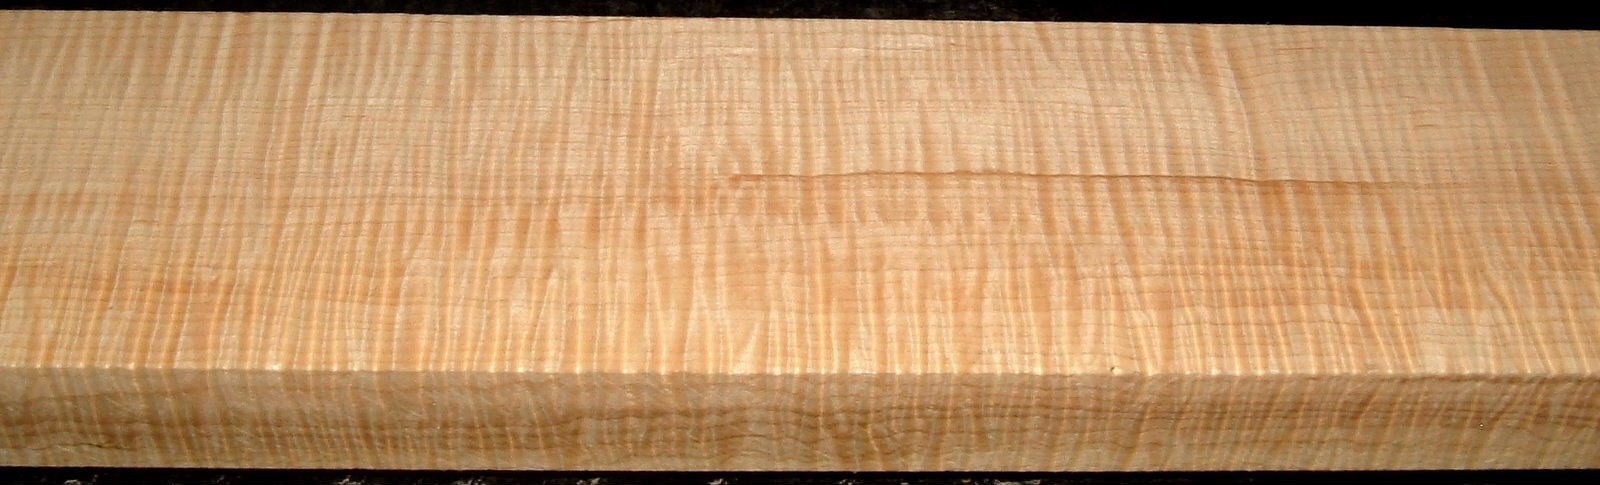 QS2001-10, 1-1/2x3-1/2x32, Quartersawn Curly Maple